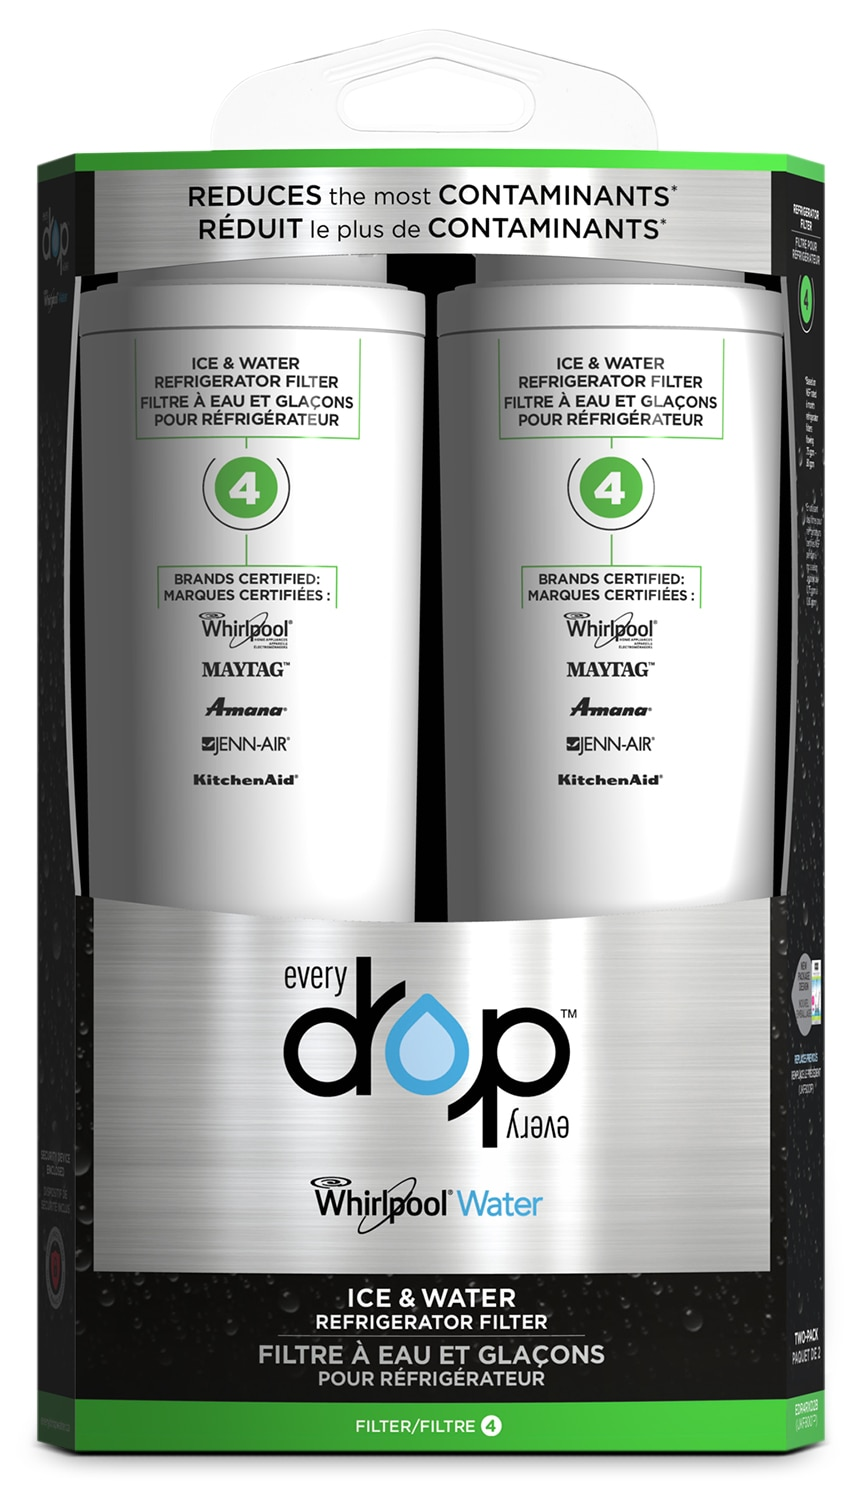 Appliance Accessories - Whirlpool Everydrop™ Ice & Water Refrigerator Filter 4 – Pack of 2